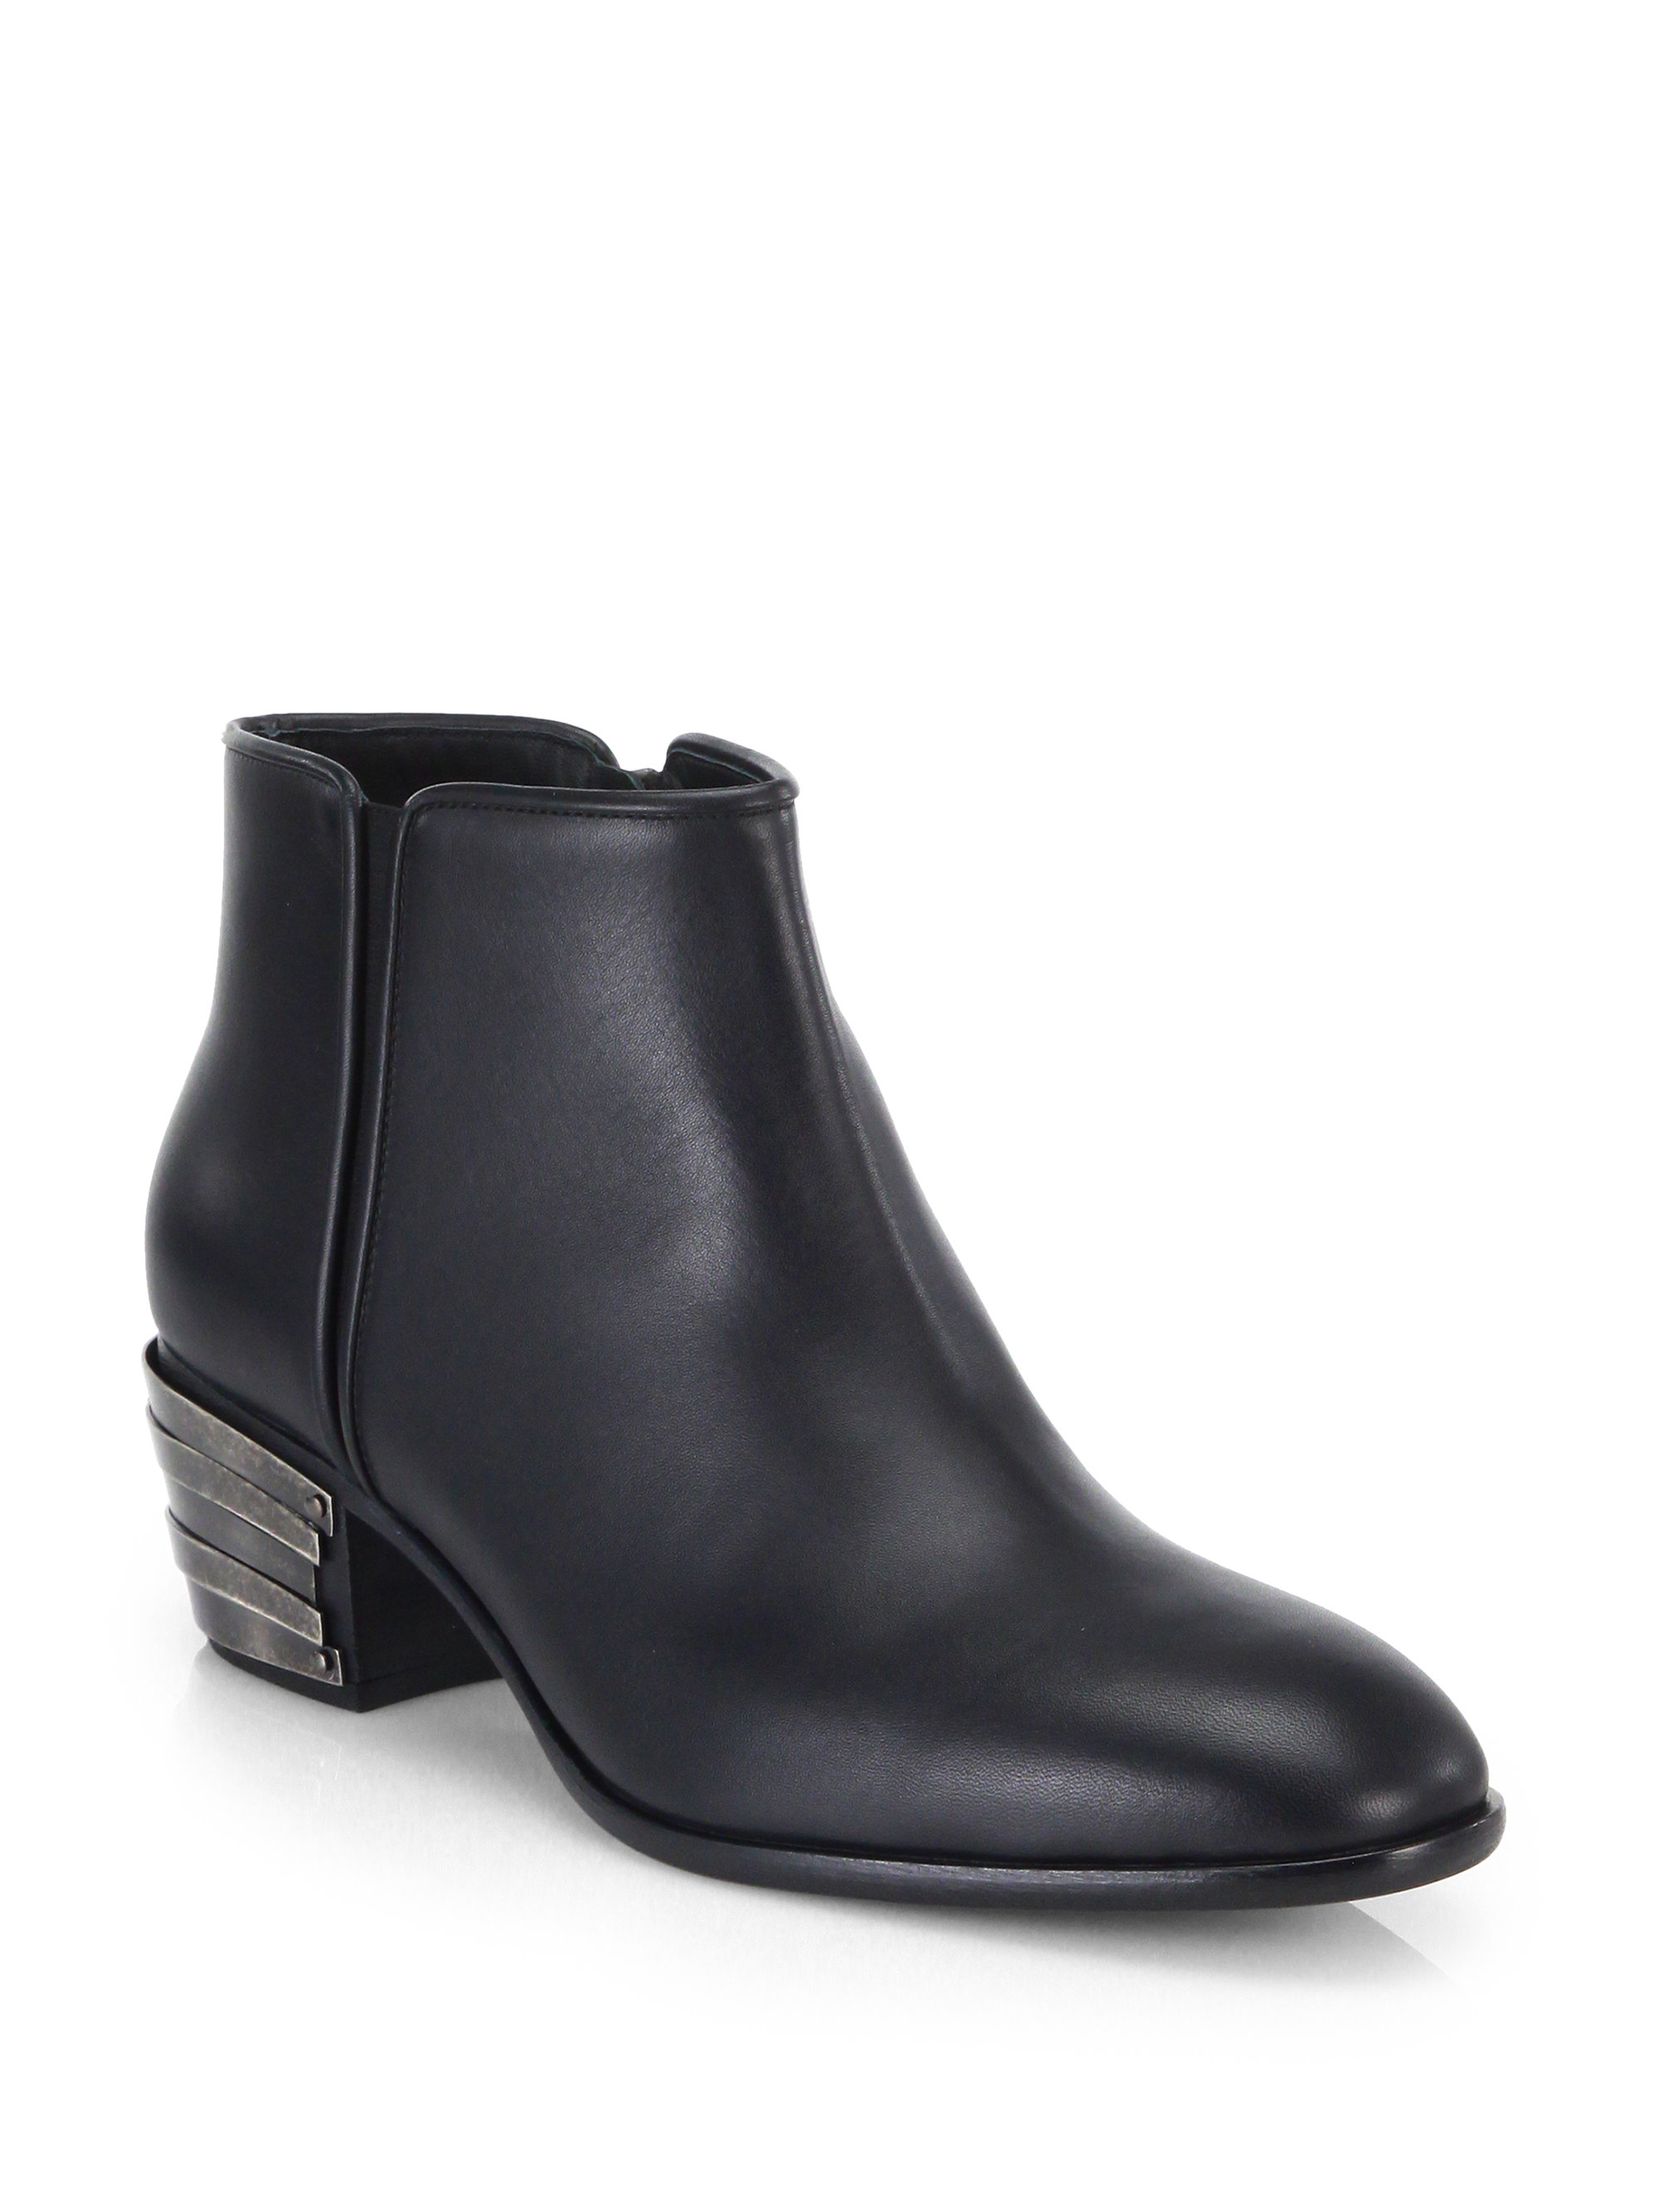 Giuseppe zanotti Metal Heel Leather Ankle Boots in Black for Men ...